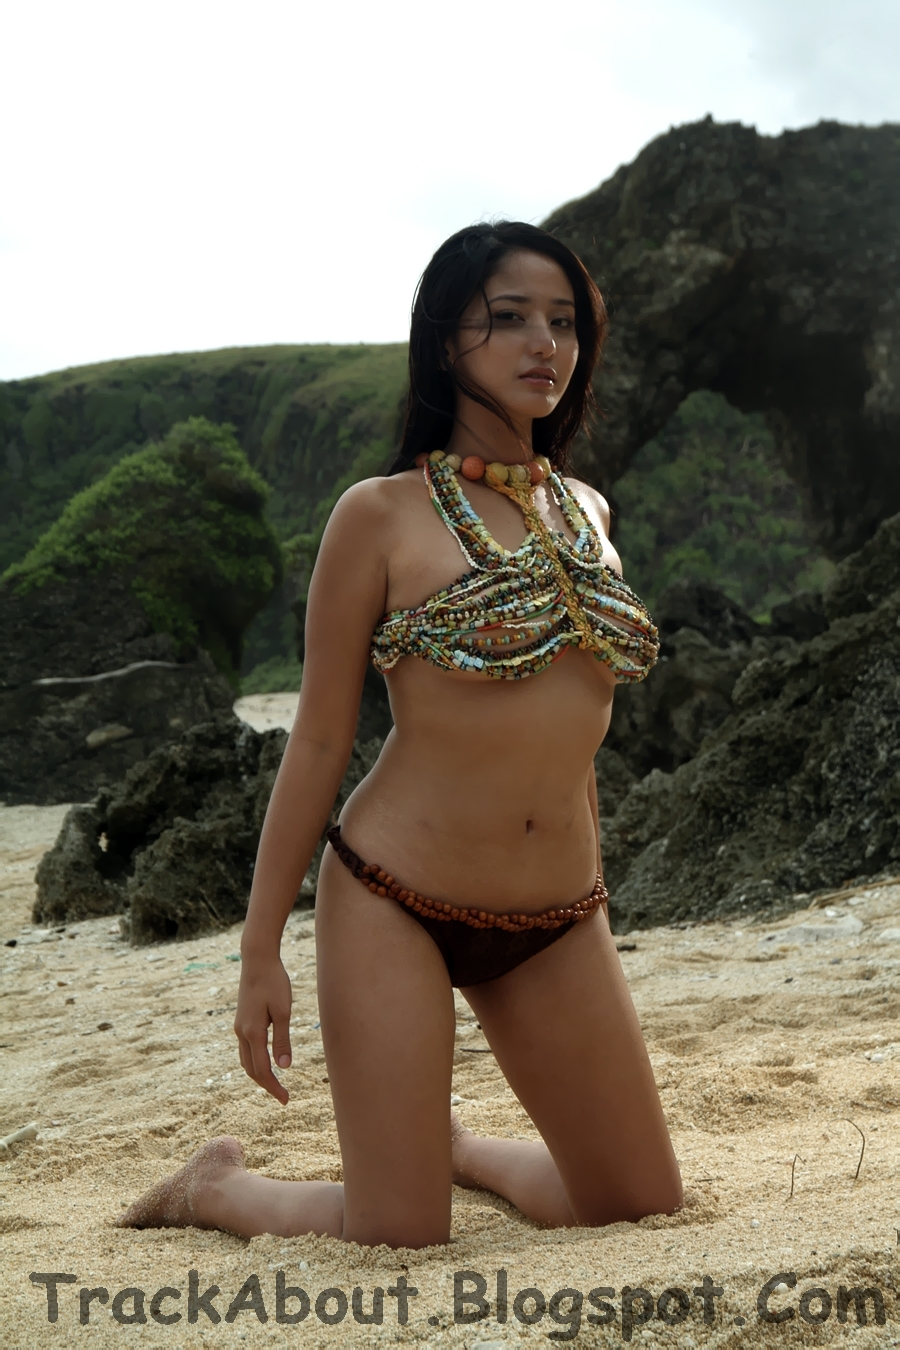 www sex scandal com ph http://trackabout.blogspot.com/2011/09/katrina-halili-sex-scandal-from.html